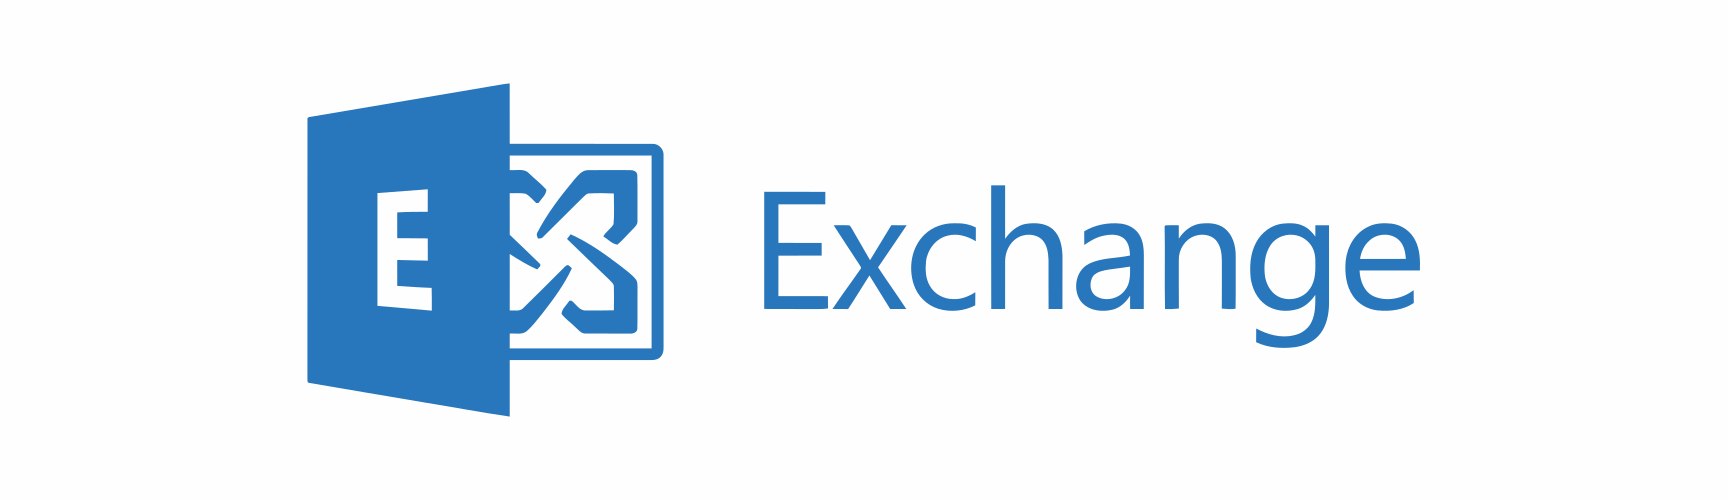 Microsoft Details Plan to End Basic Authentication for Exchange Online